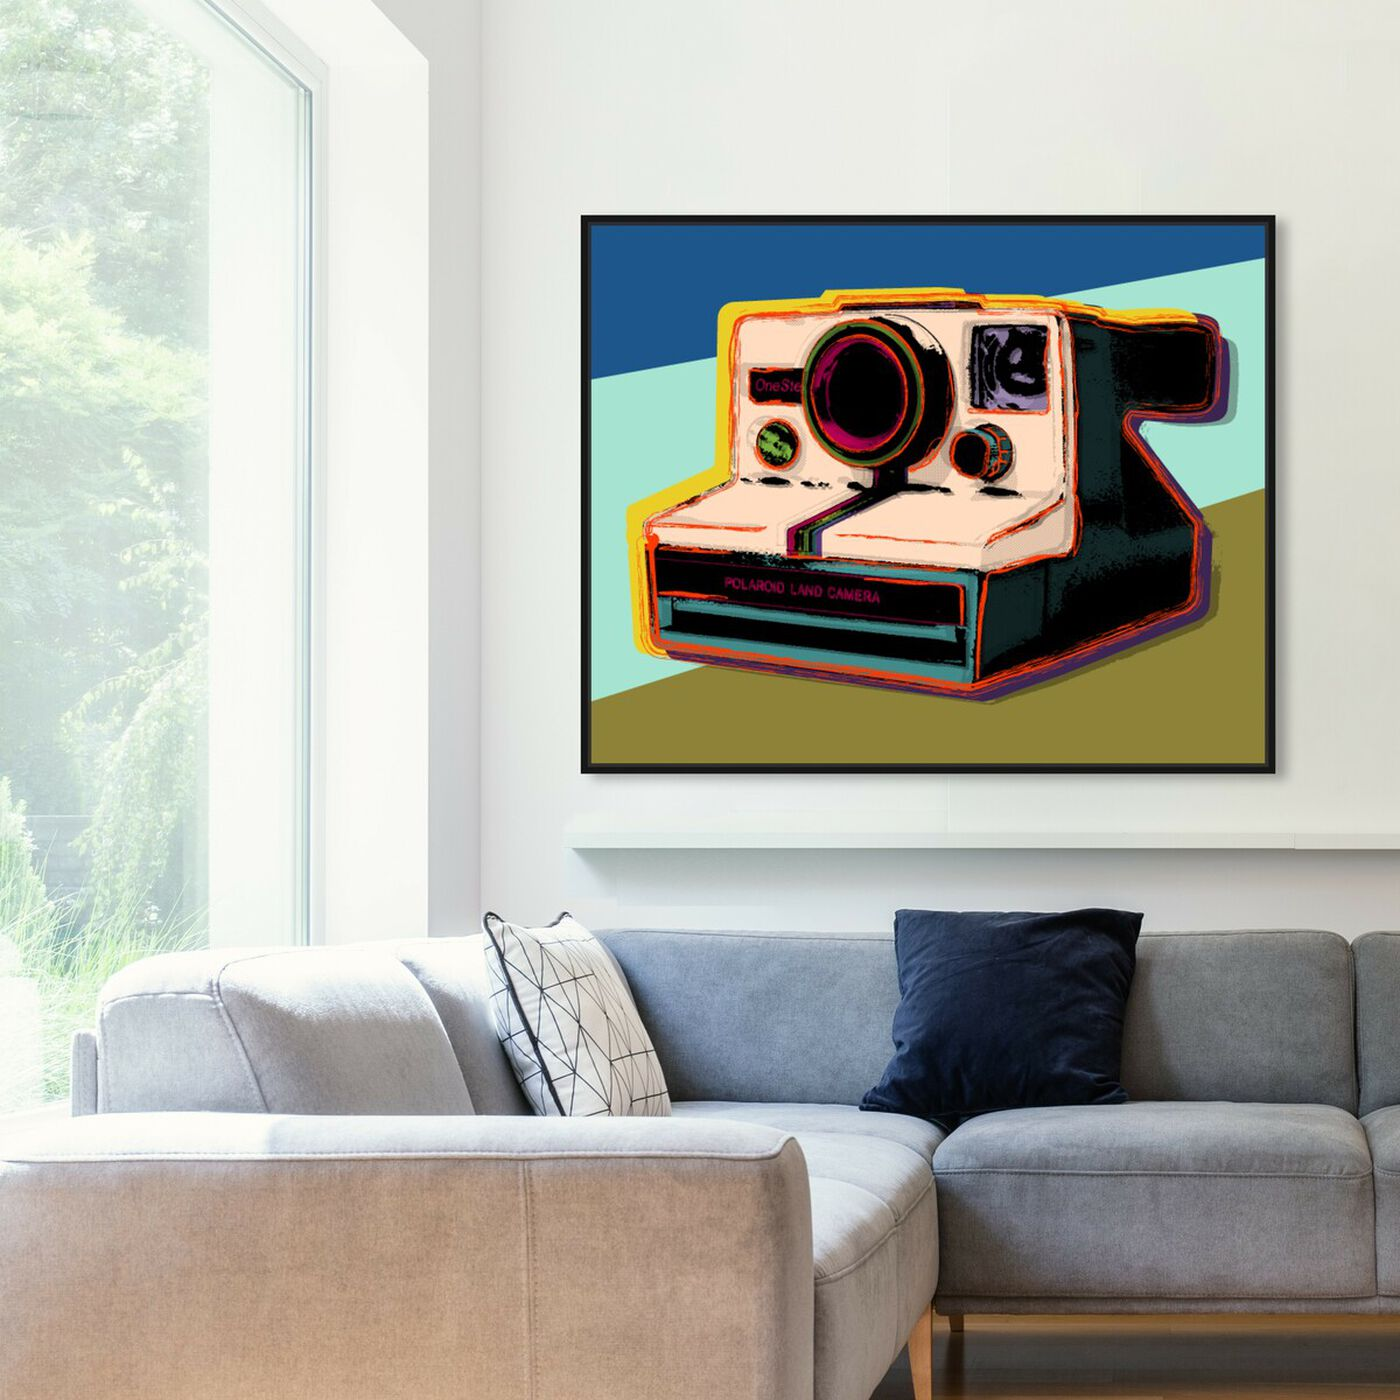 Hanging view of Polaroid Visions featuring entertainment and hobbies and photography art.